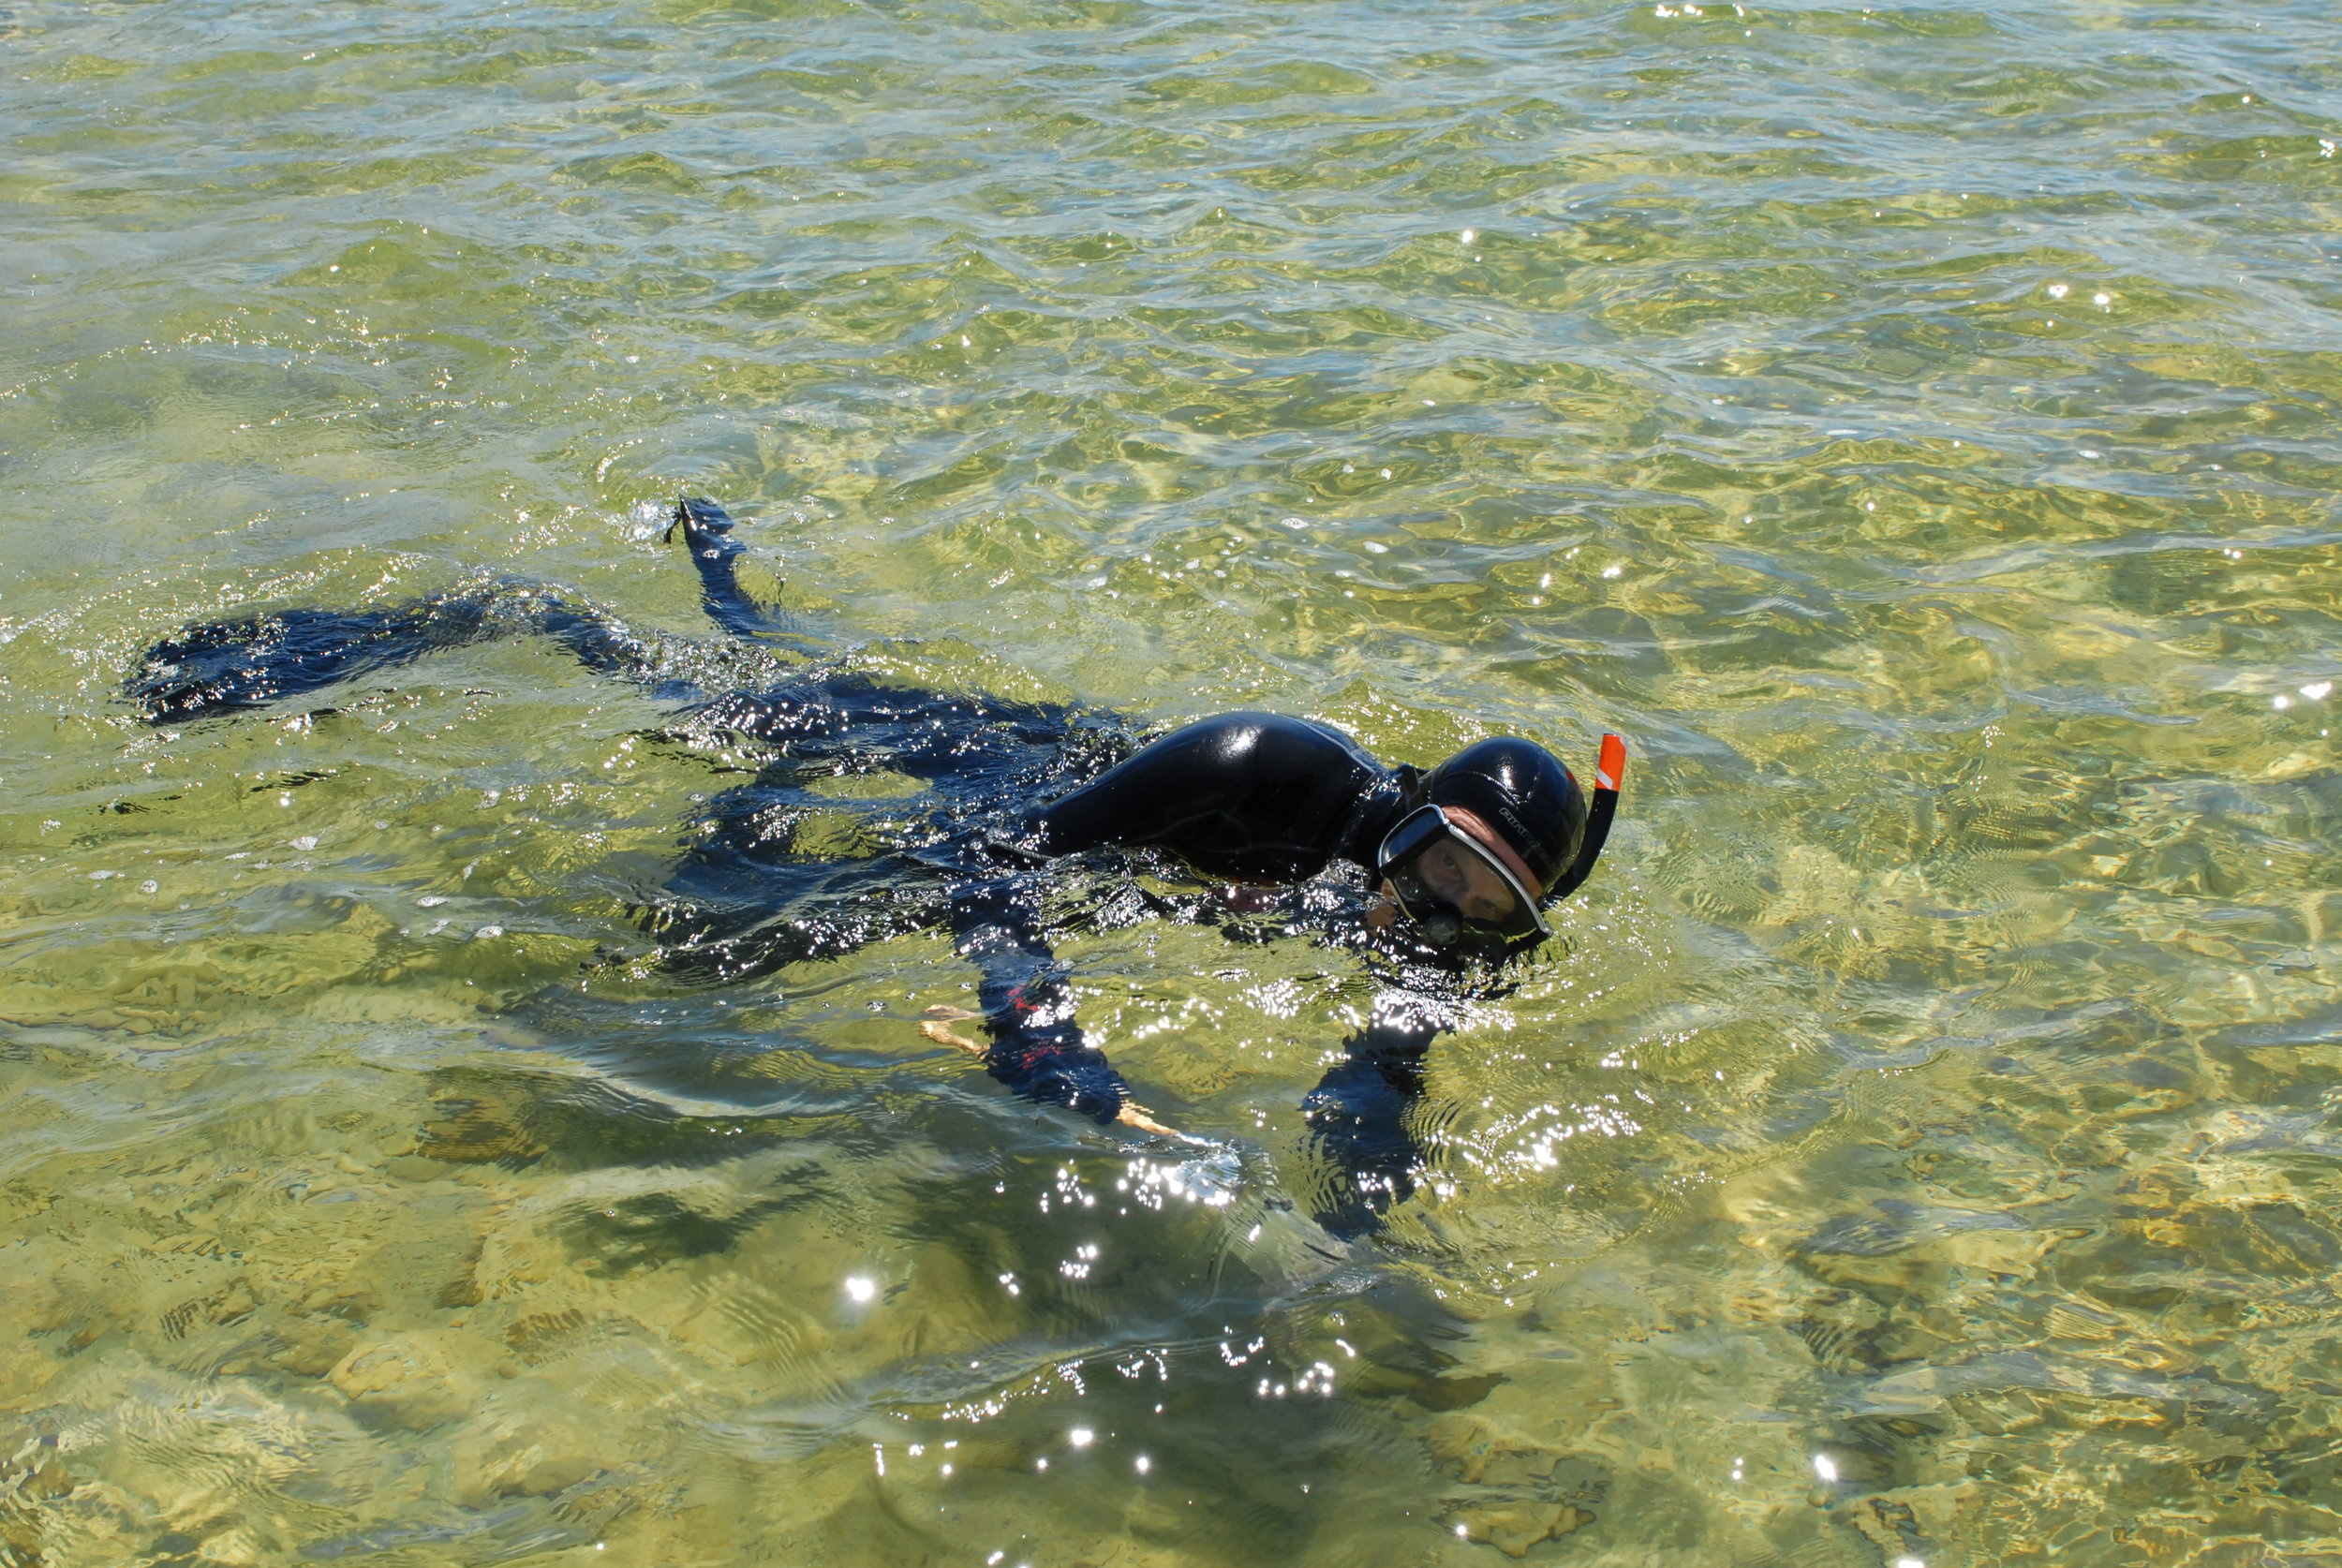 Snorkeling for snails to check for parasites